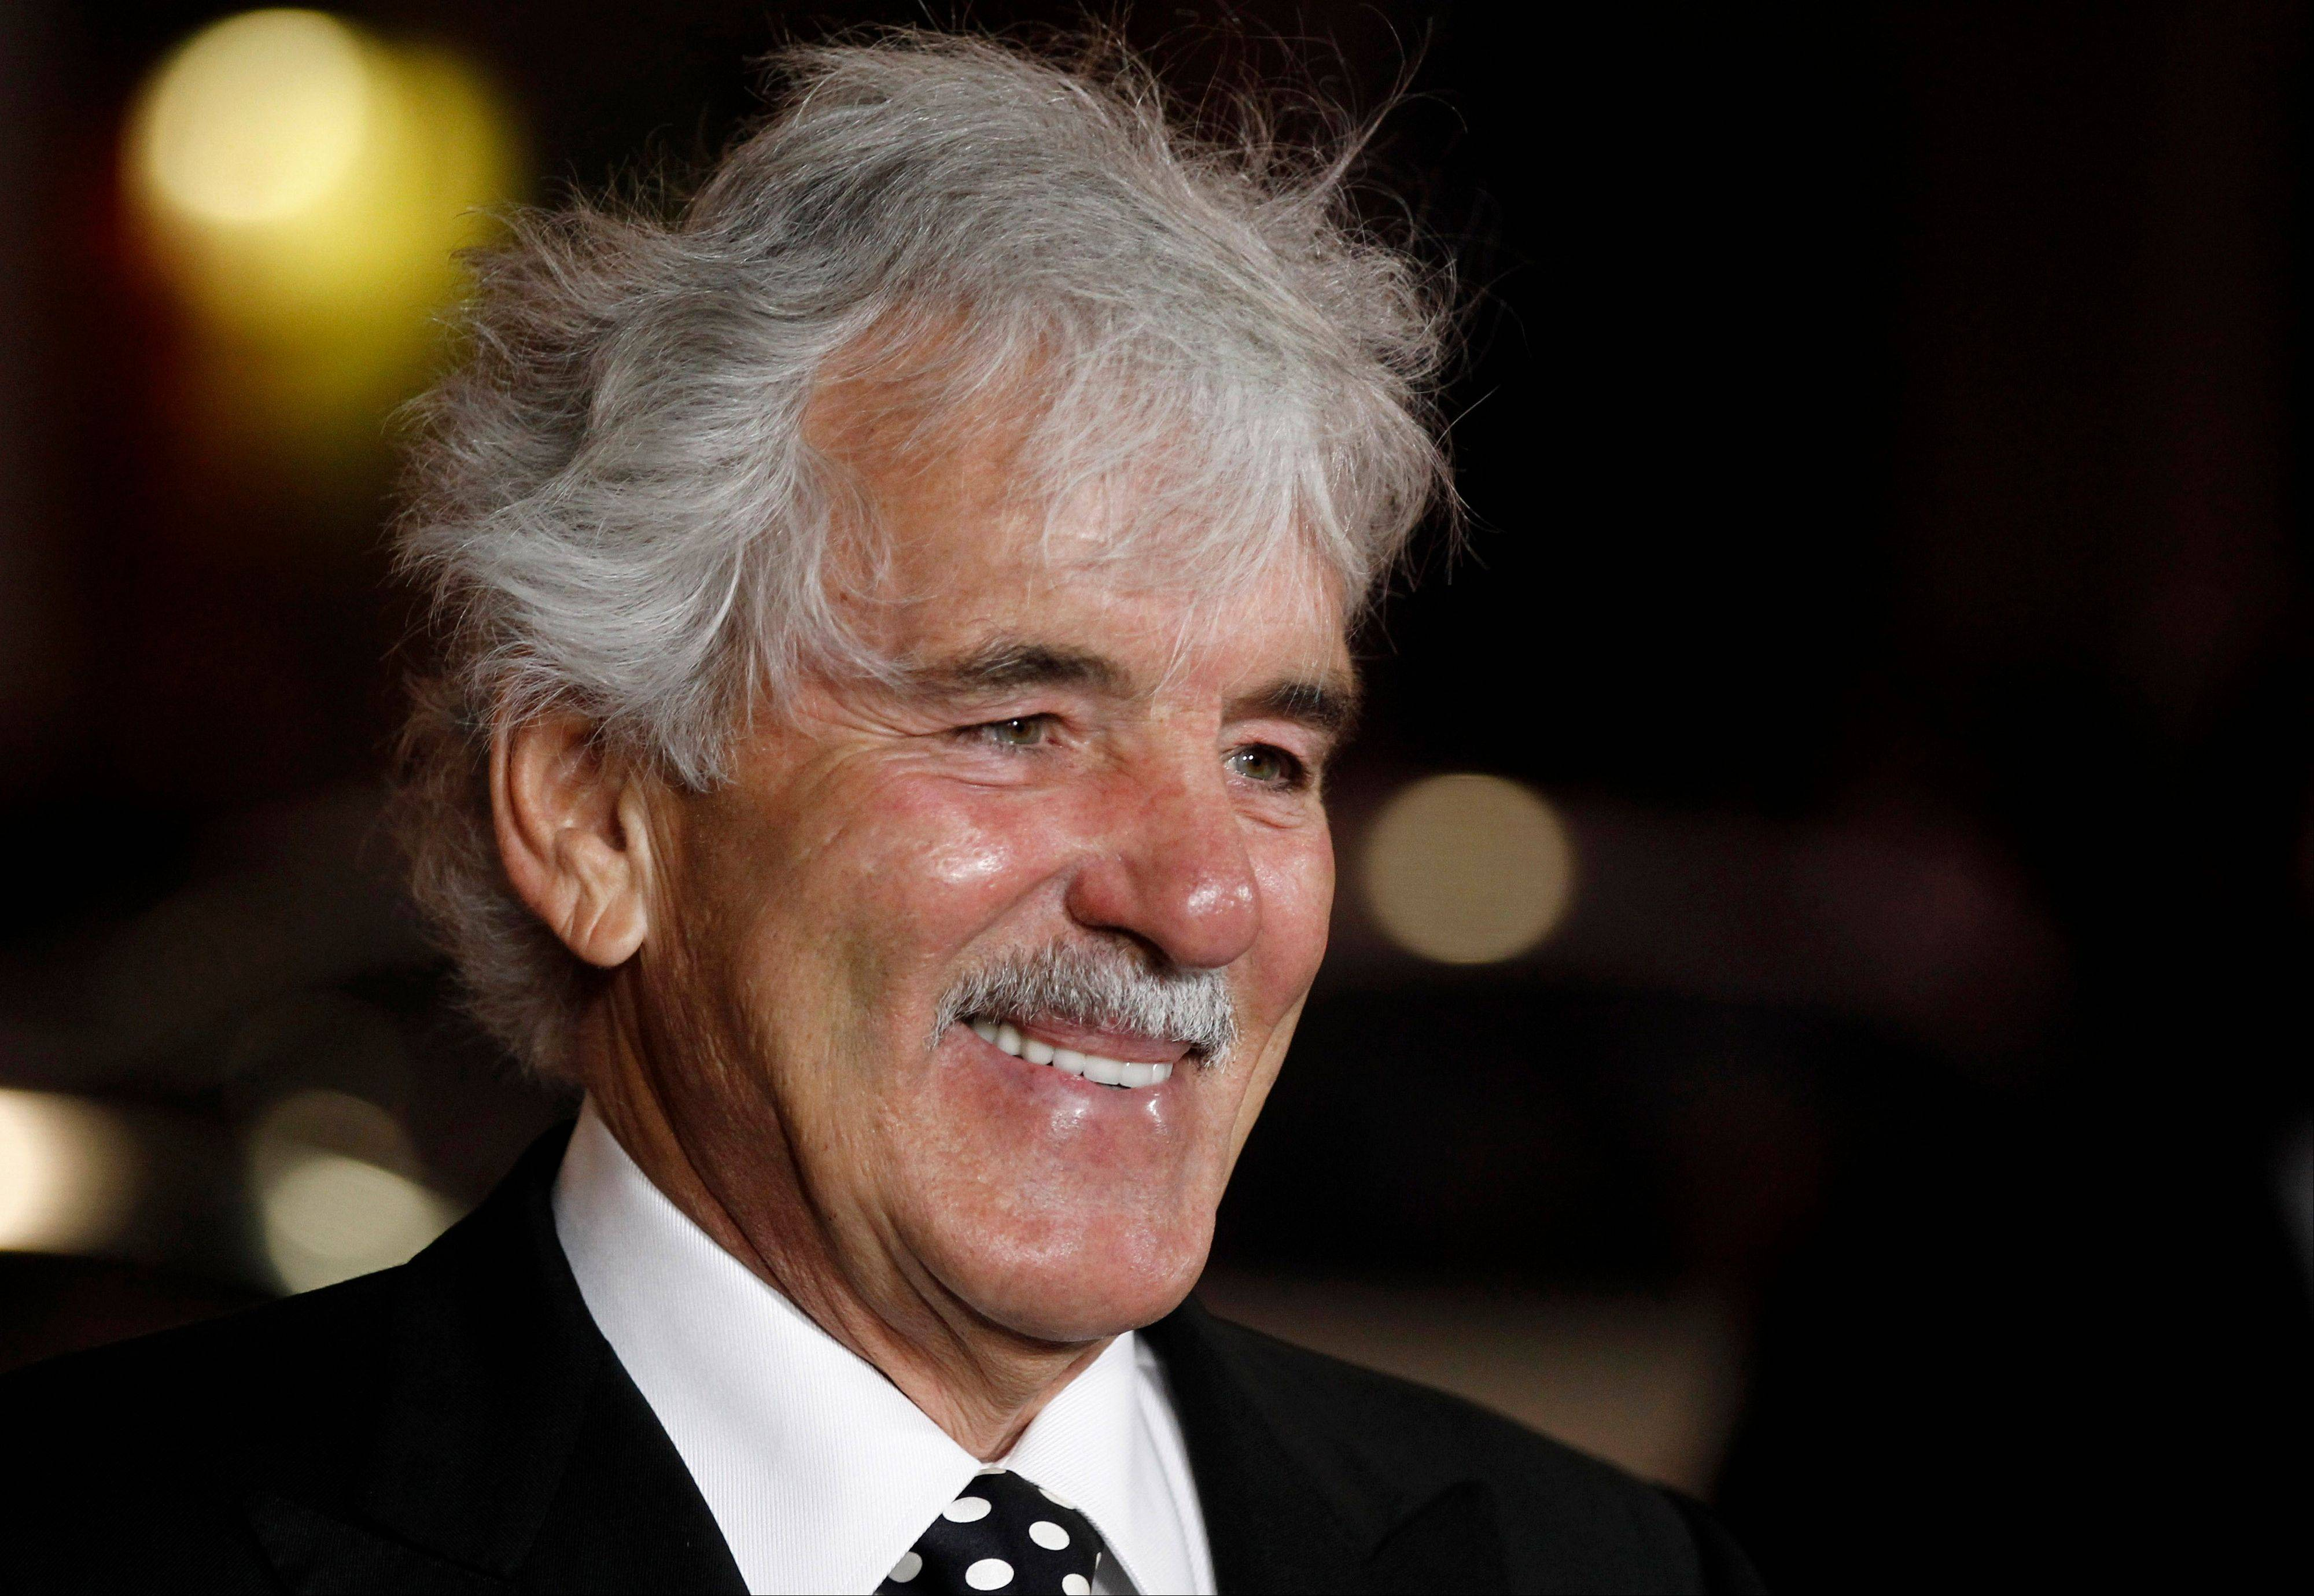 Dennis Farina arrives at the premiere for the HBO television series �Luck� in Los Angeles. Farina died suddenly on July 22 and entrepreneur Ron Onesti said he plans to honor the actor at his 8th annual Little Italy Fest-West, which starts today in Addison.